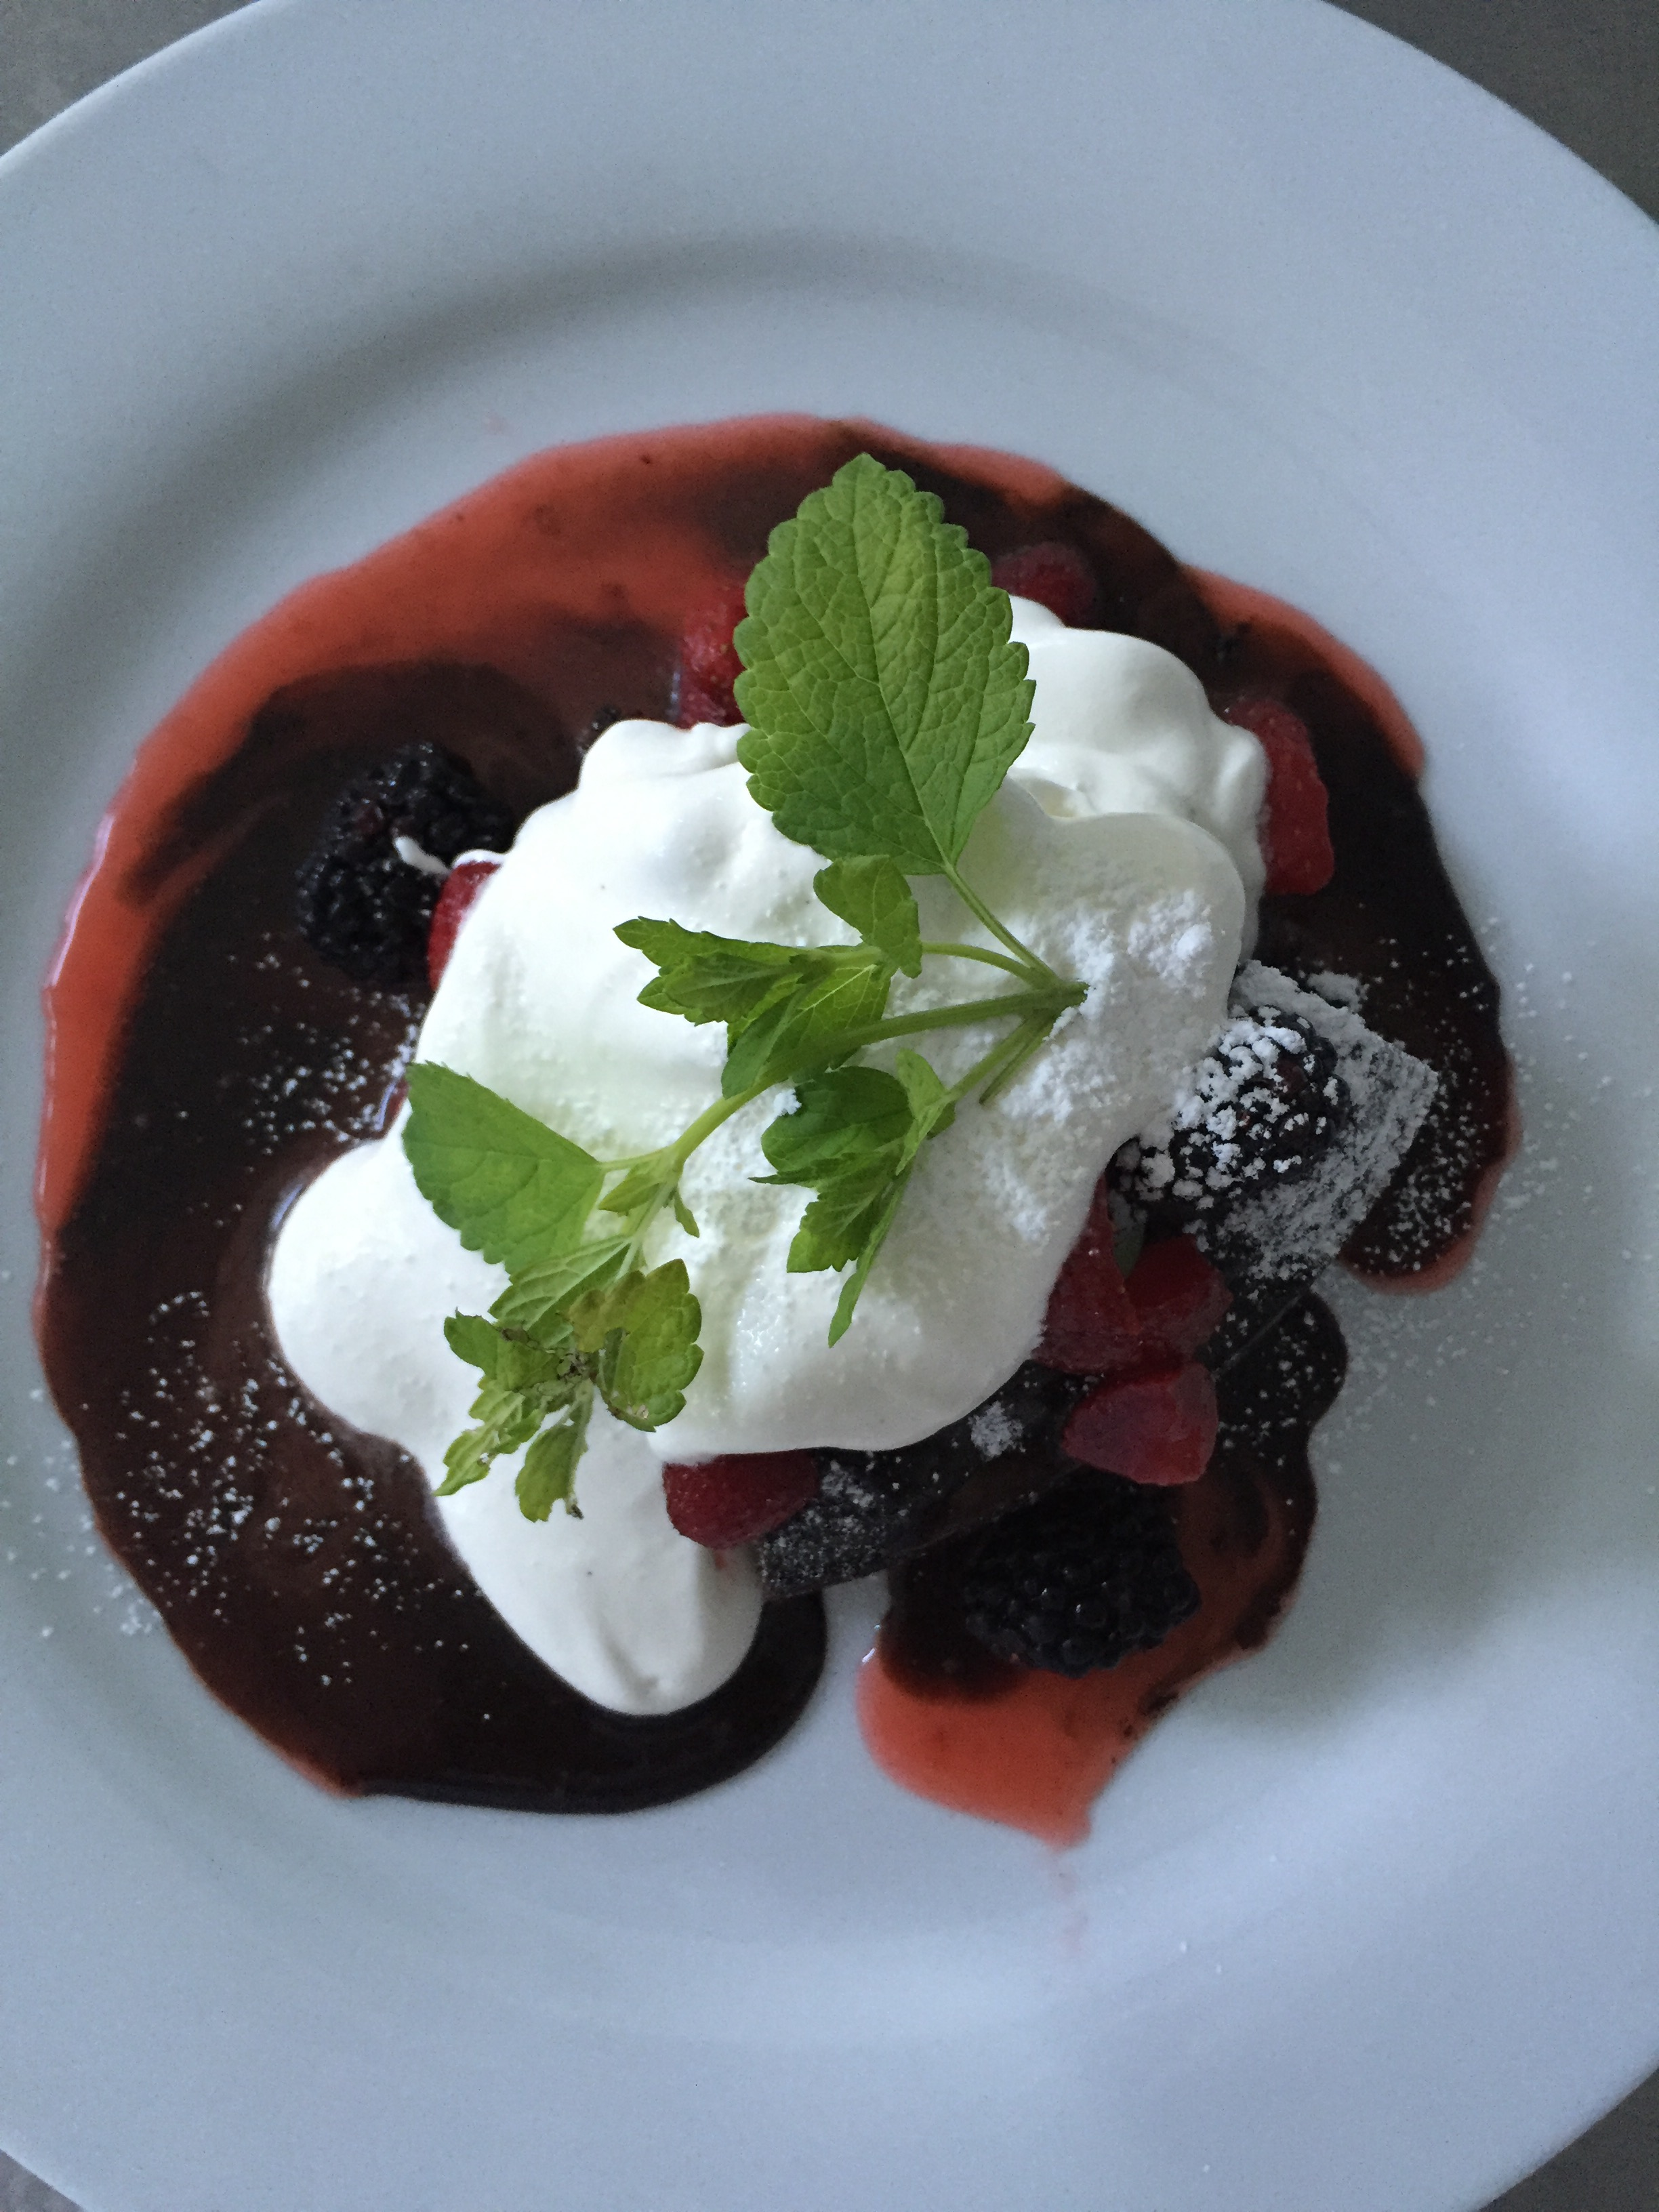 flourless chocolate cake served with a berry reduction, fresh berries whipped cream